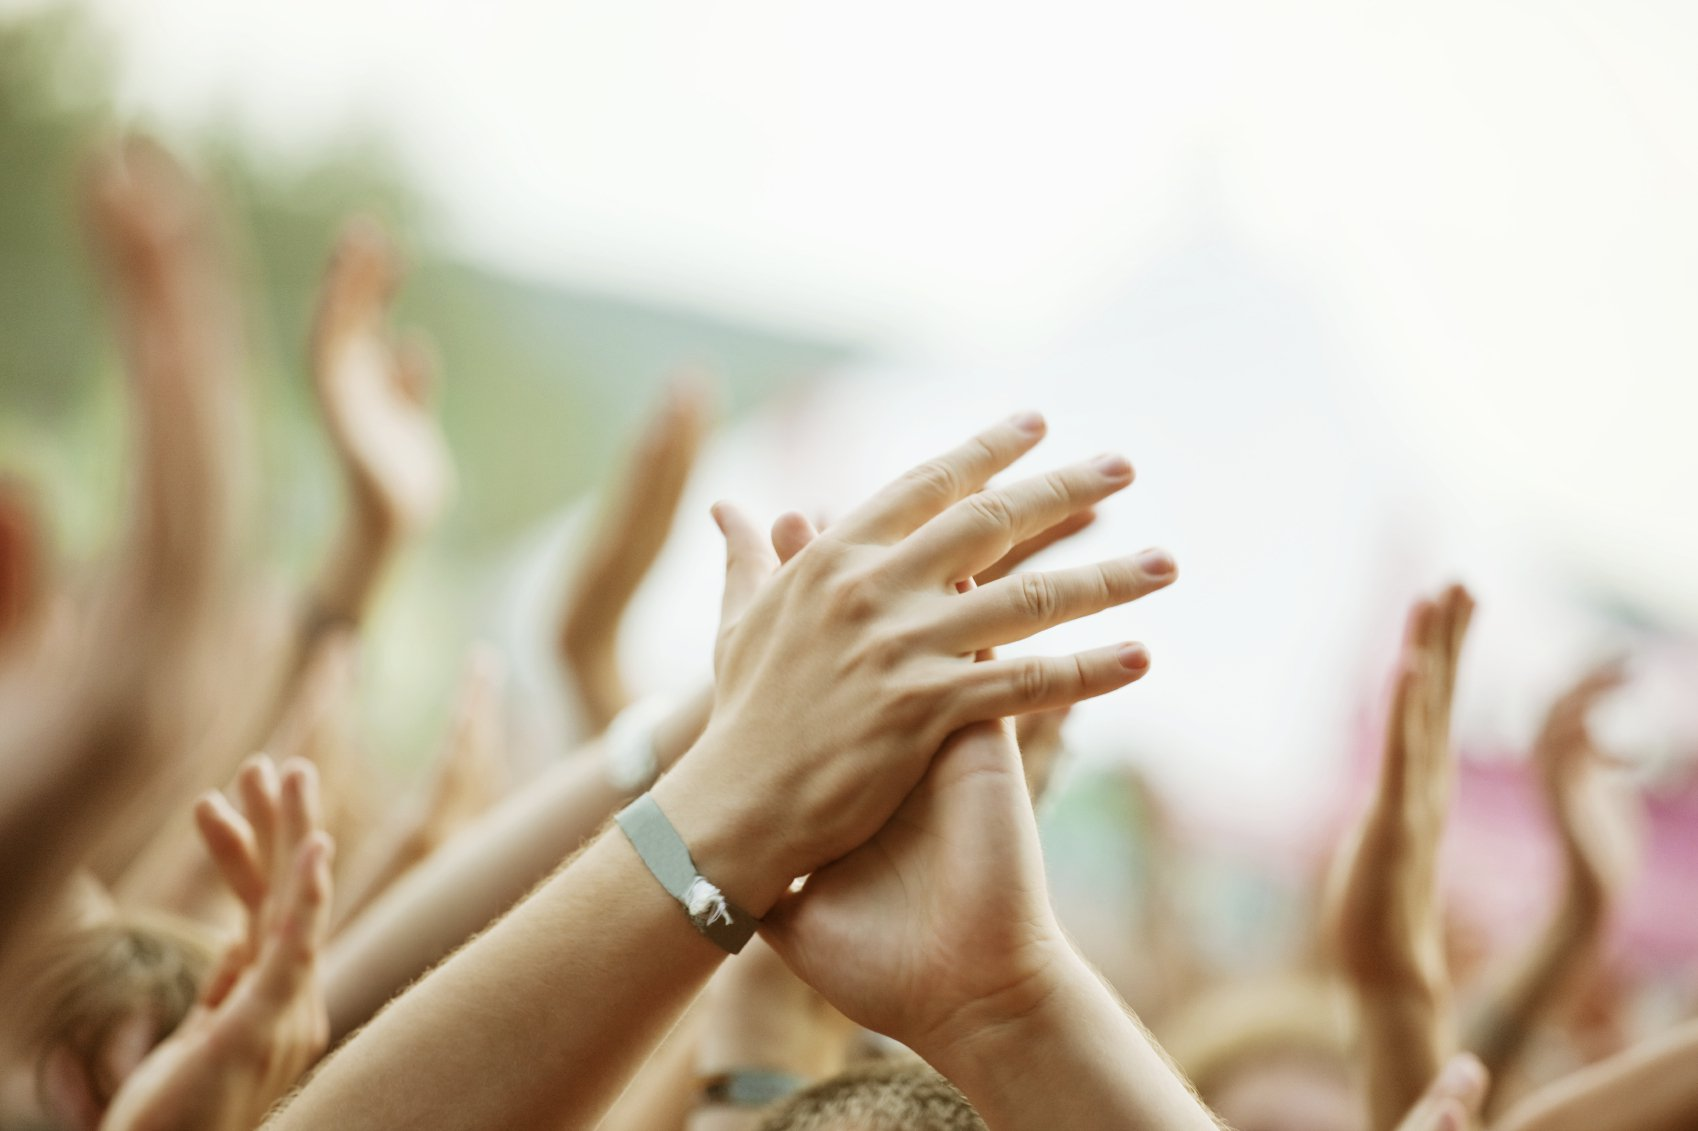 image applause hands concert medium jpg the rolling nuggets